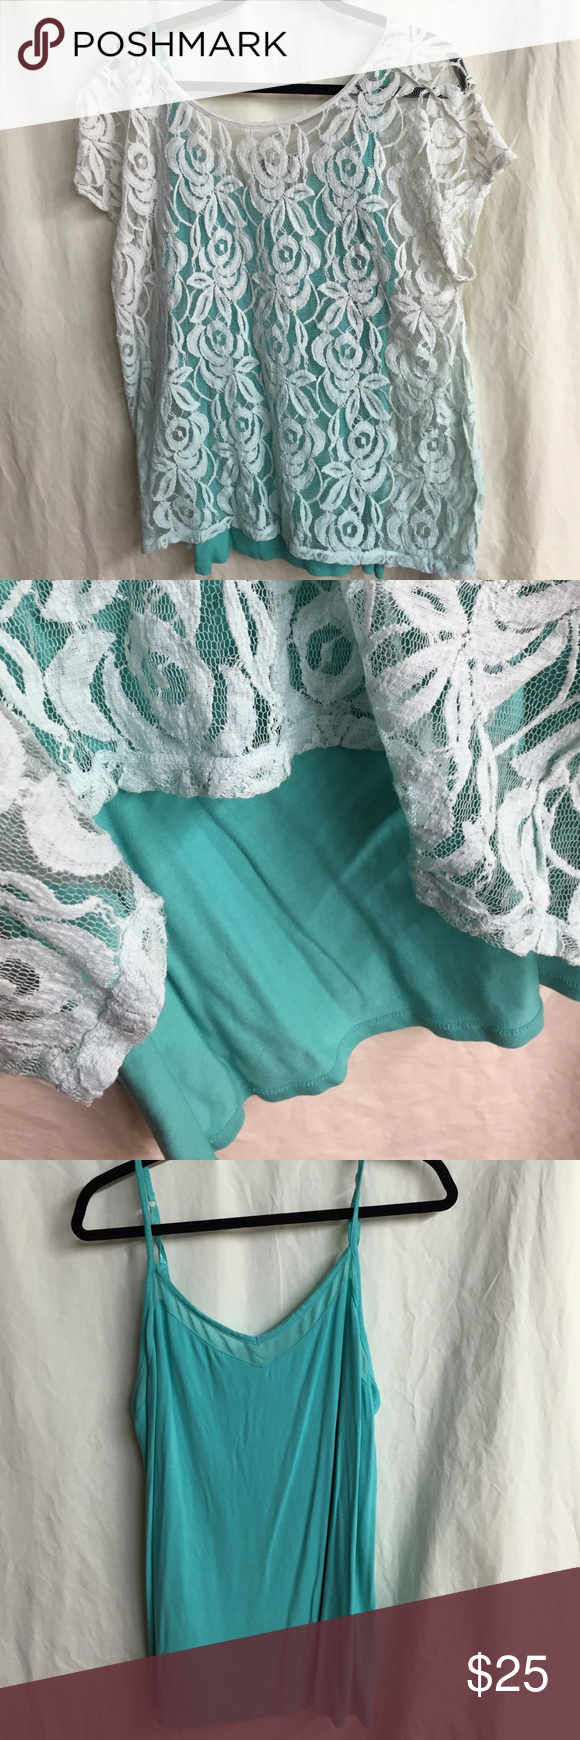 Lane Bryant lace top with matching cami Mostly white with subtle ombré turquoise color towards bottom. Comes with a matching cami. Excellent condition with no stains or snags. From a smoke free home. Both items are size 18/20 Lane Bryant Tops Blouses